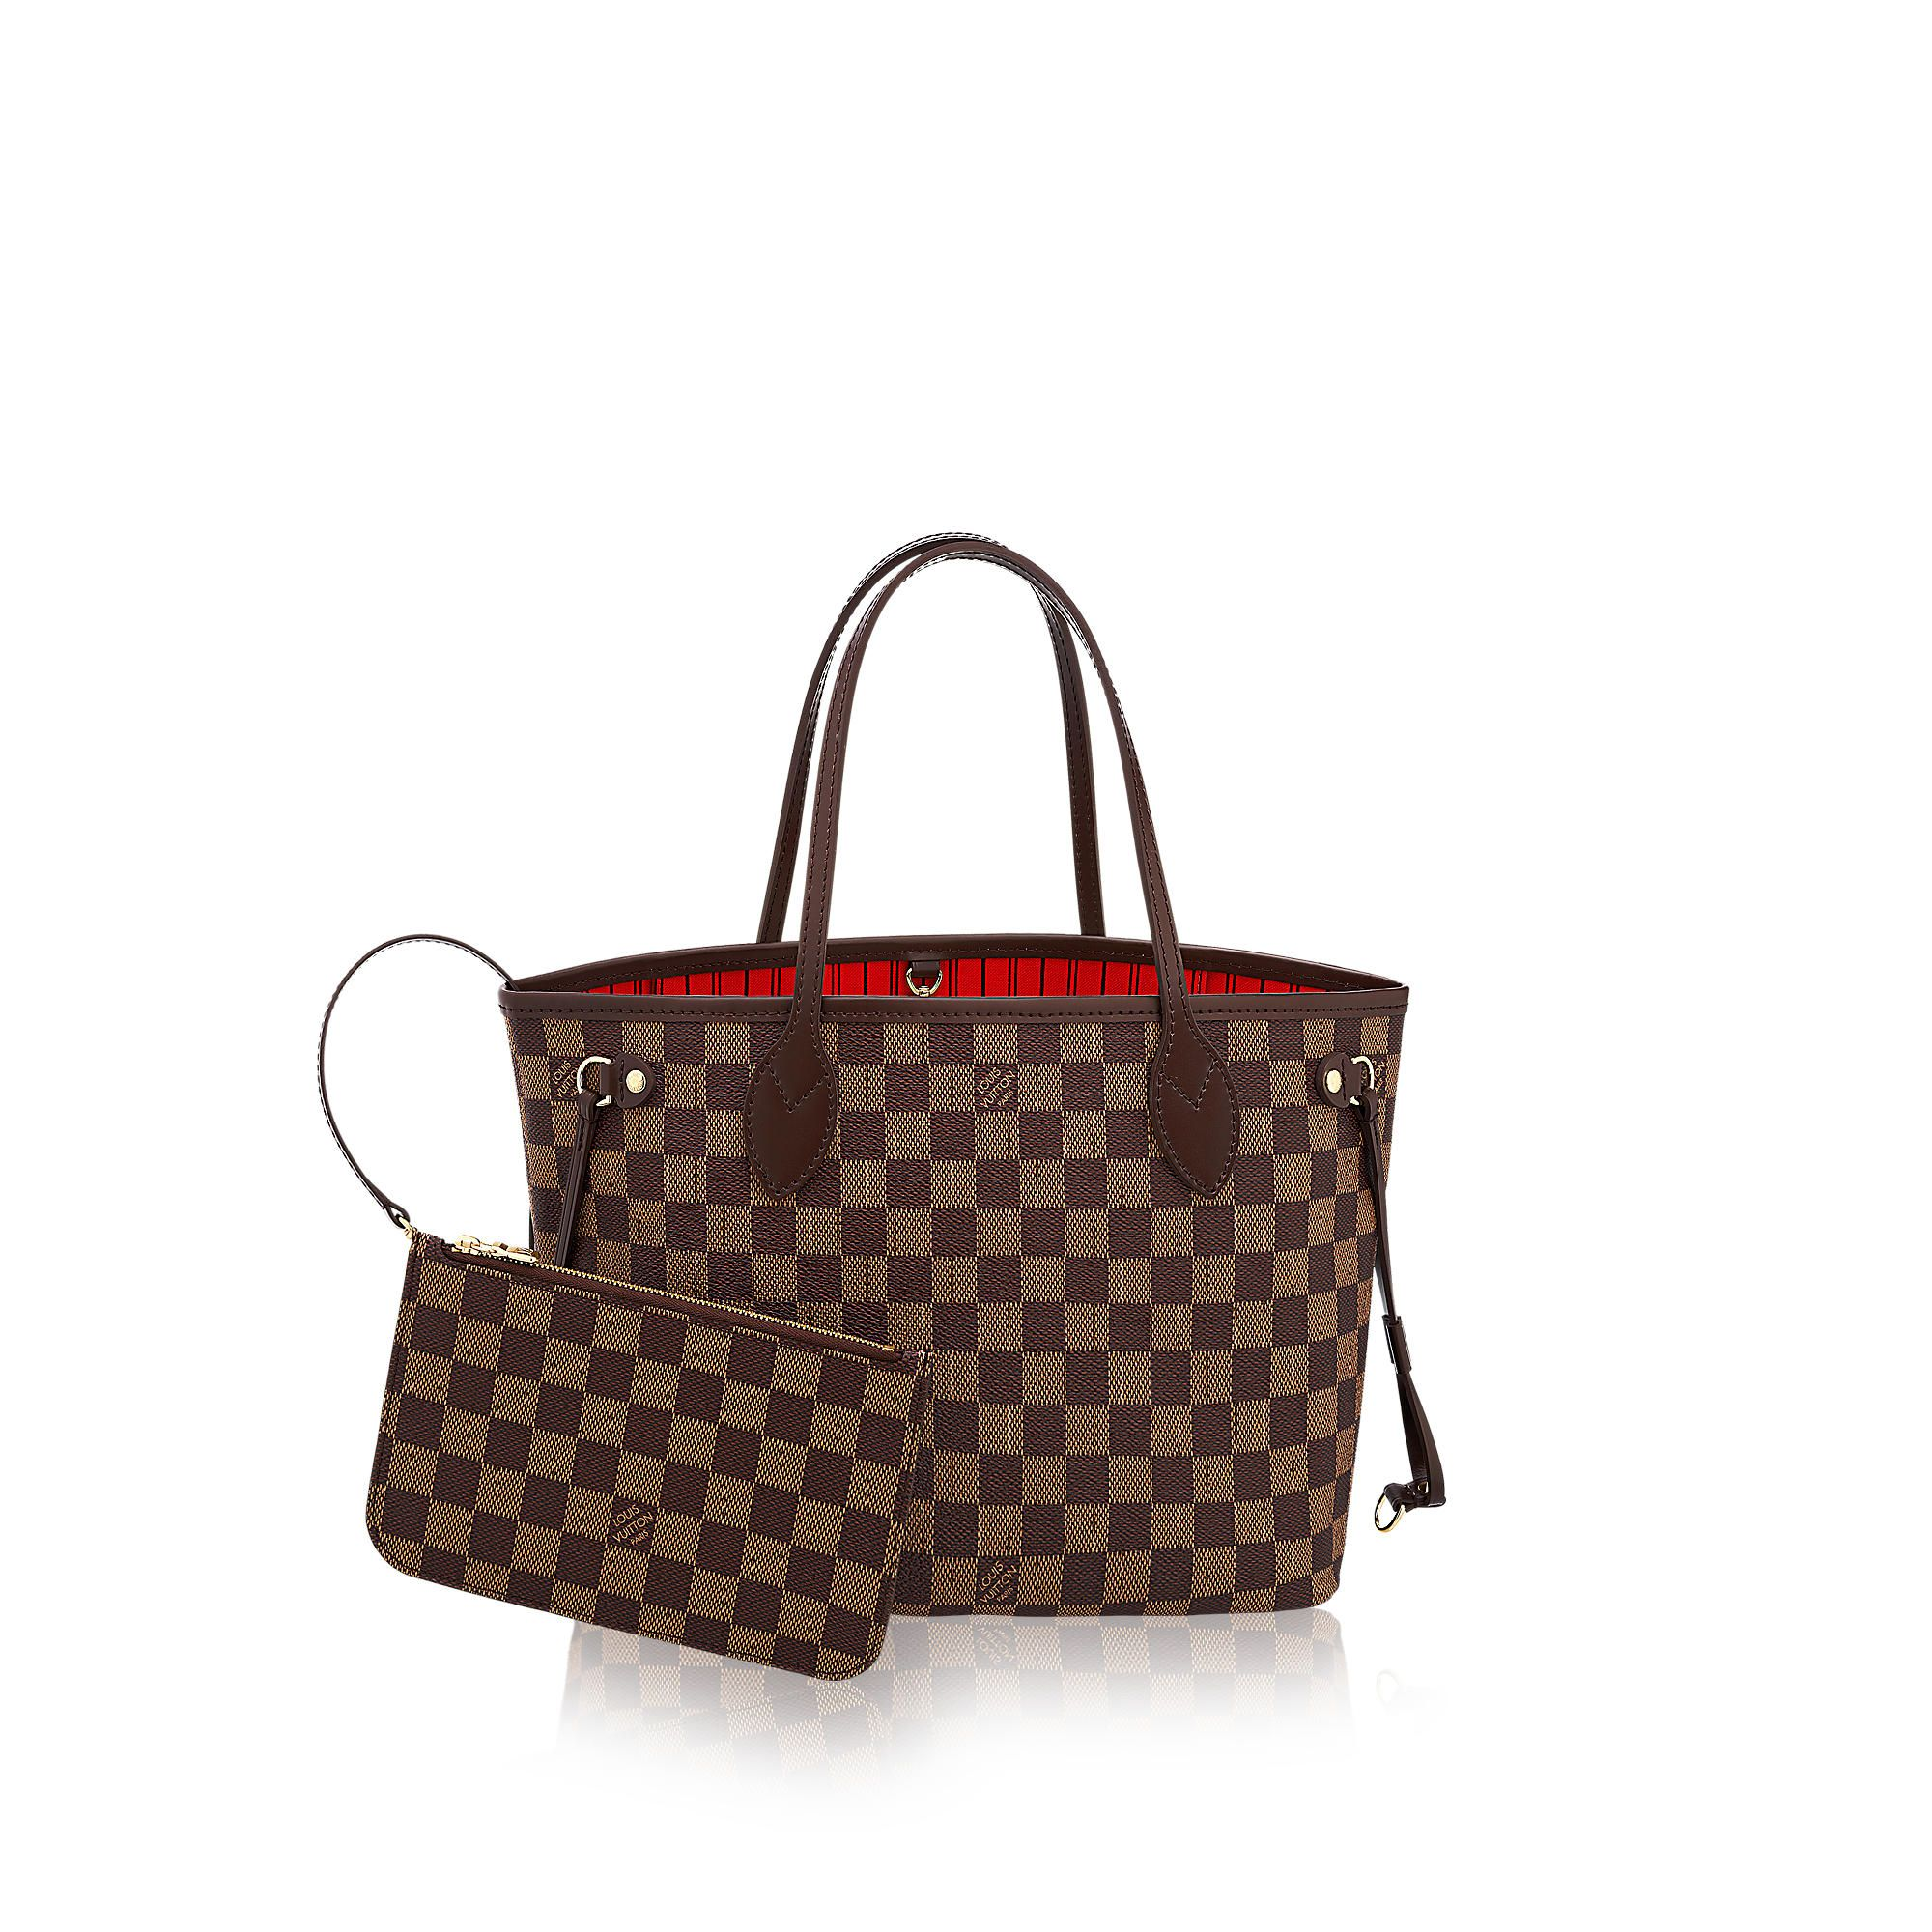 2f26c047d Neverfull PM | Jewelry/ Accessories | Louis vuitton handbags, Louis ...